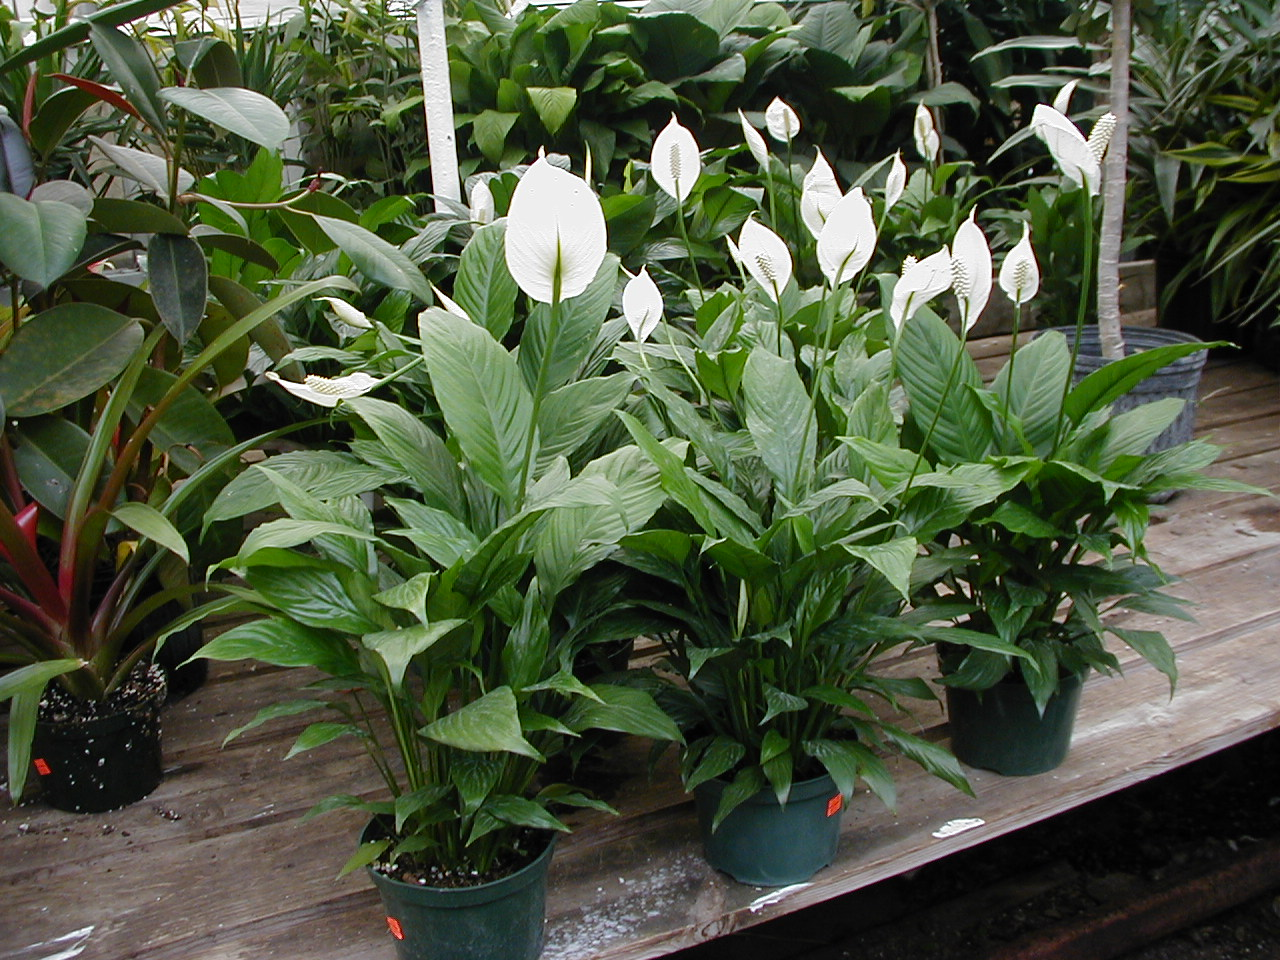 Plants for home or office spathyphylum peace lily name spathi means spathe part of the sail like flower phyllum means leaf spathe like a leaf origin south and central izmirmasajfo Image collections